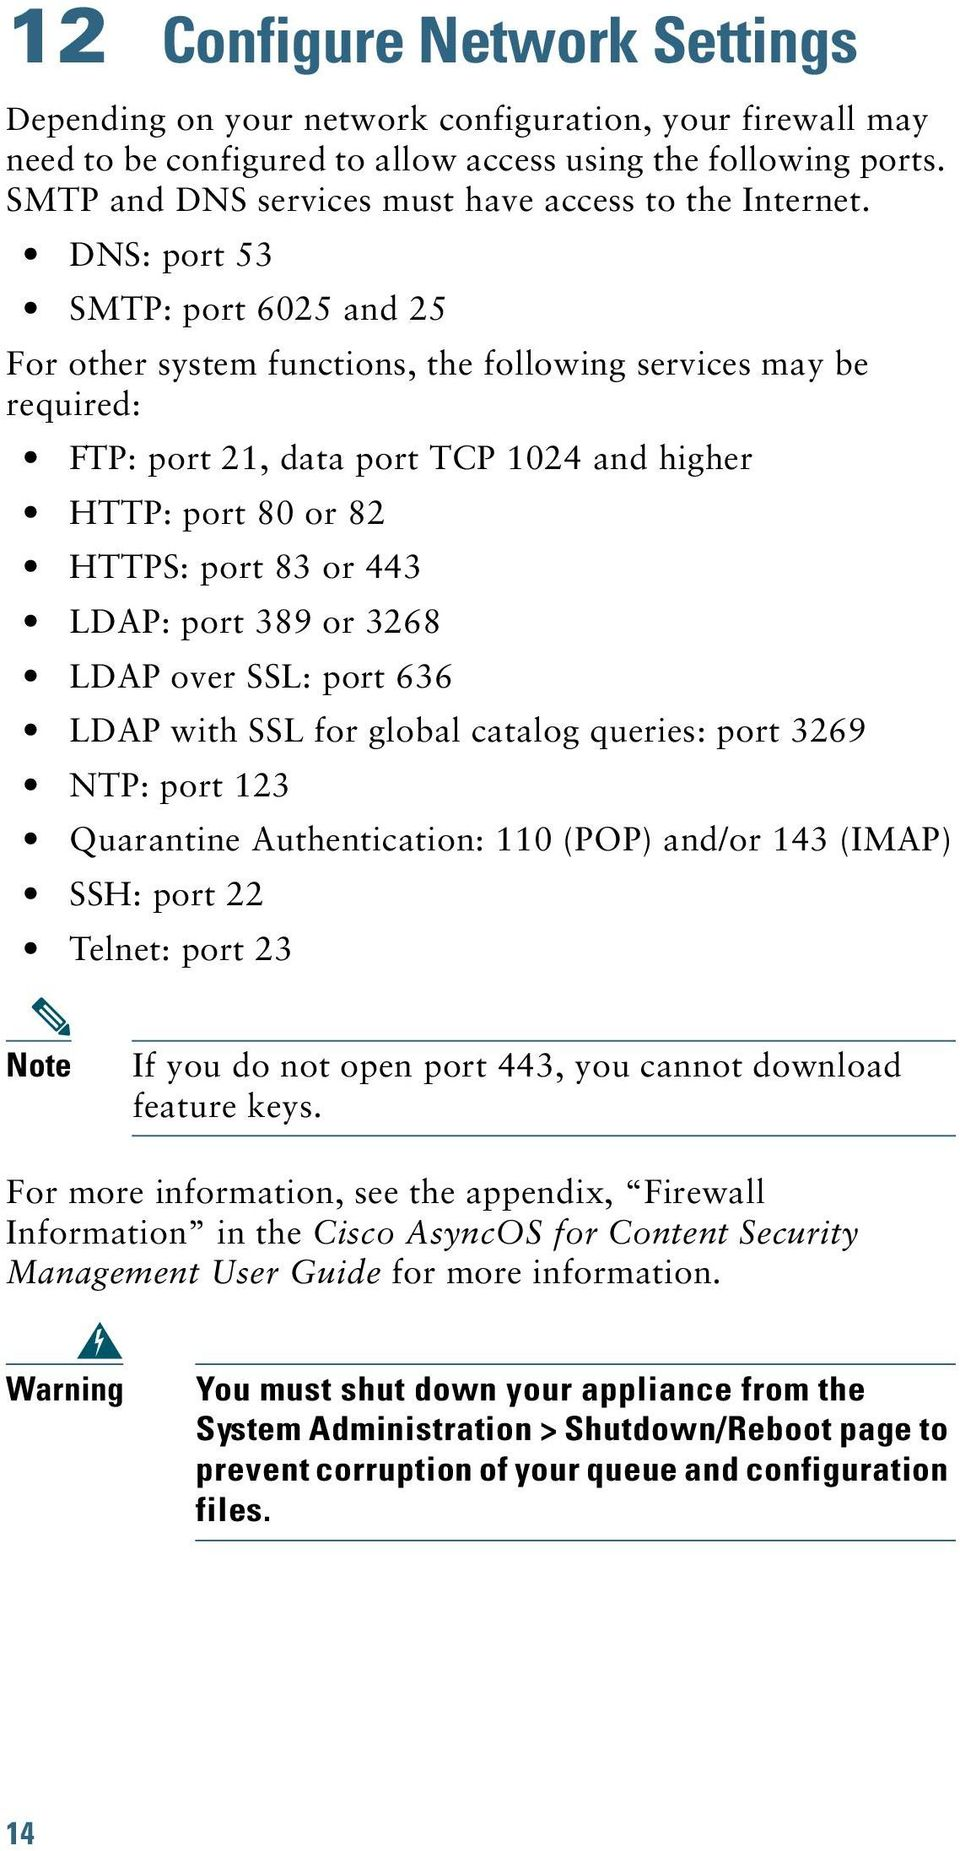 DNS: port 53 SMTP: port 6025 and 25 For other system functions, the following services may be required: FTP: port 21, data port TCP 1024 and higher HTTP: port 80 or 82 HTTPS: port 83 or 443 LDAP: